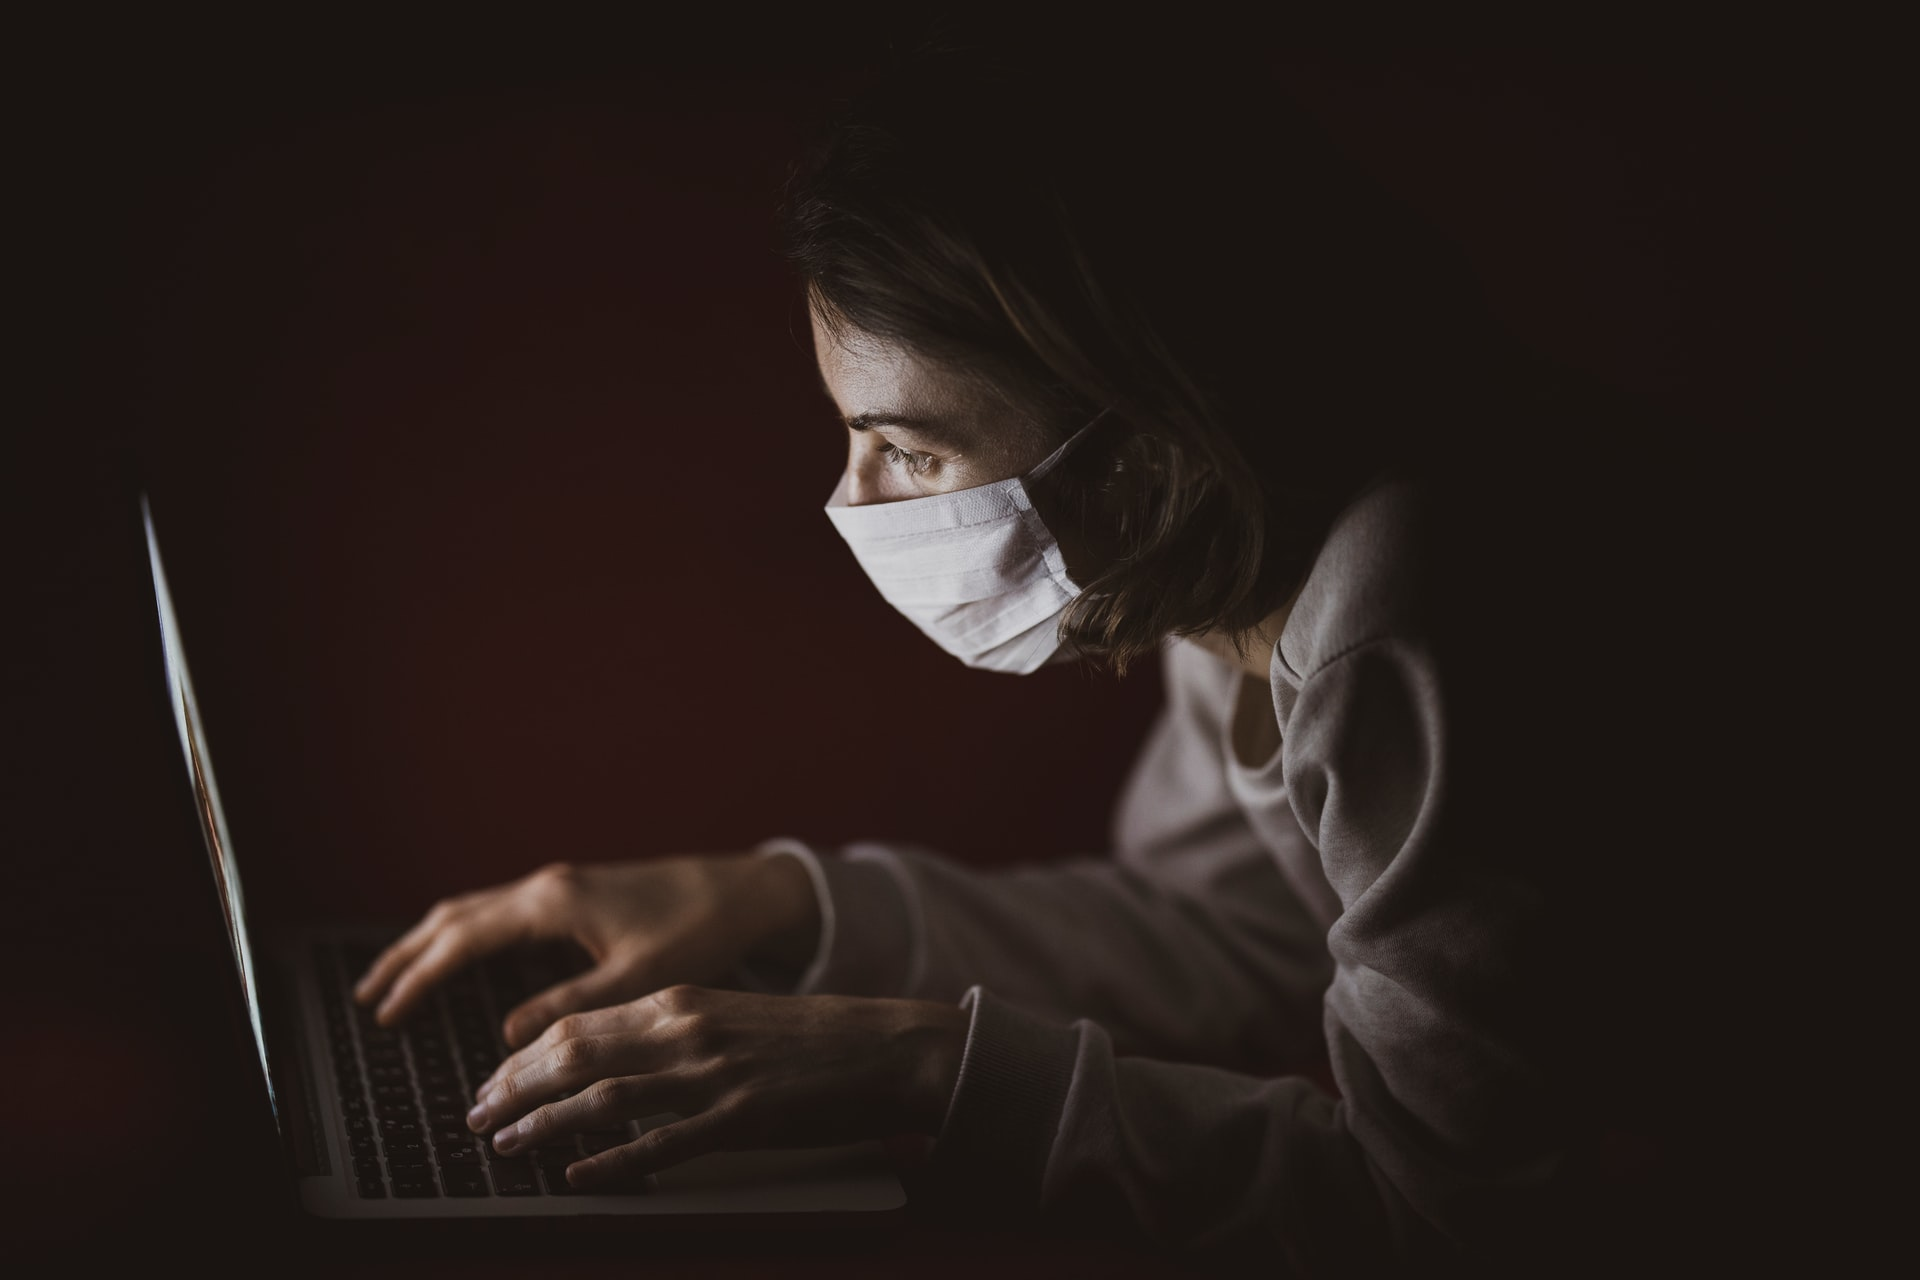 Person with masks in front of laptop